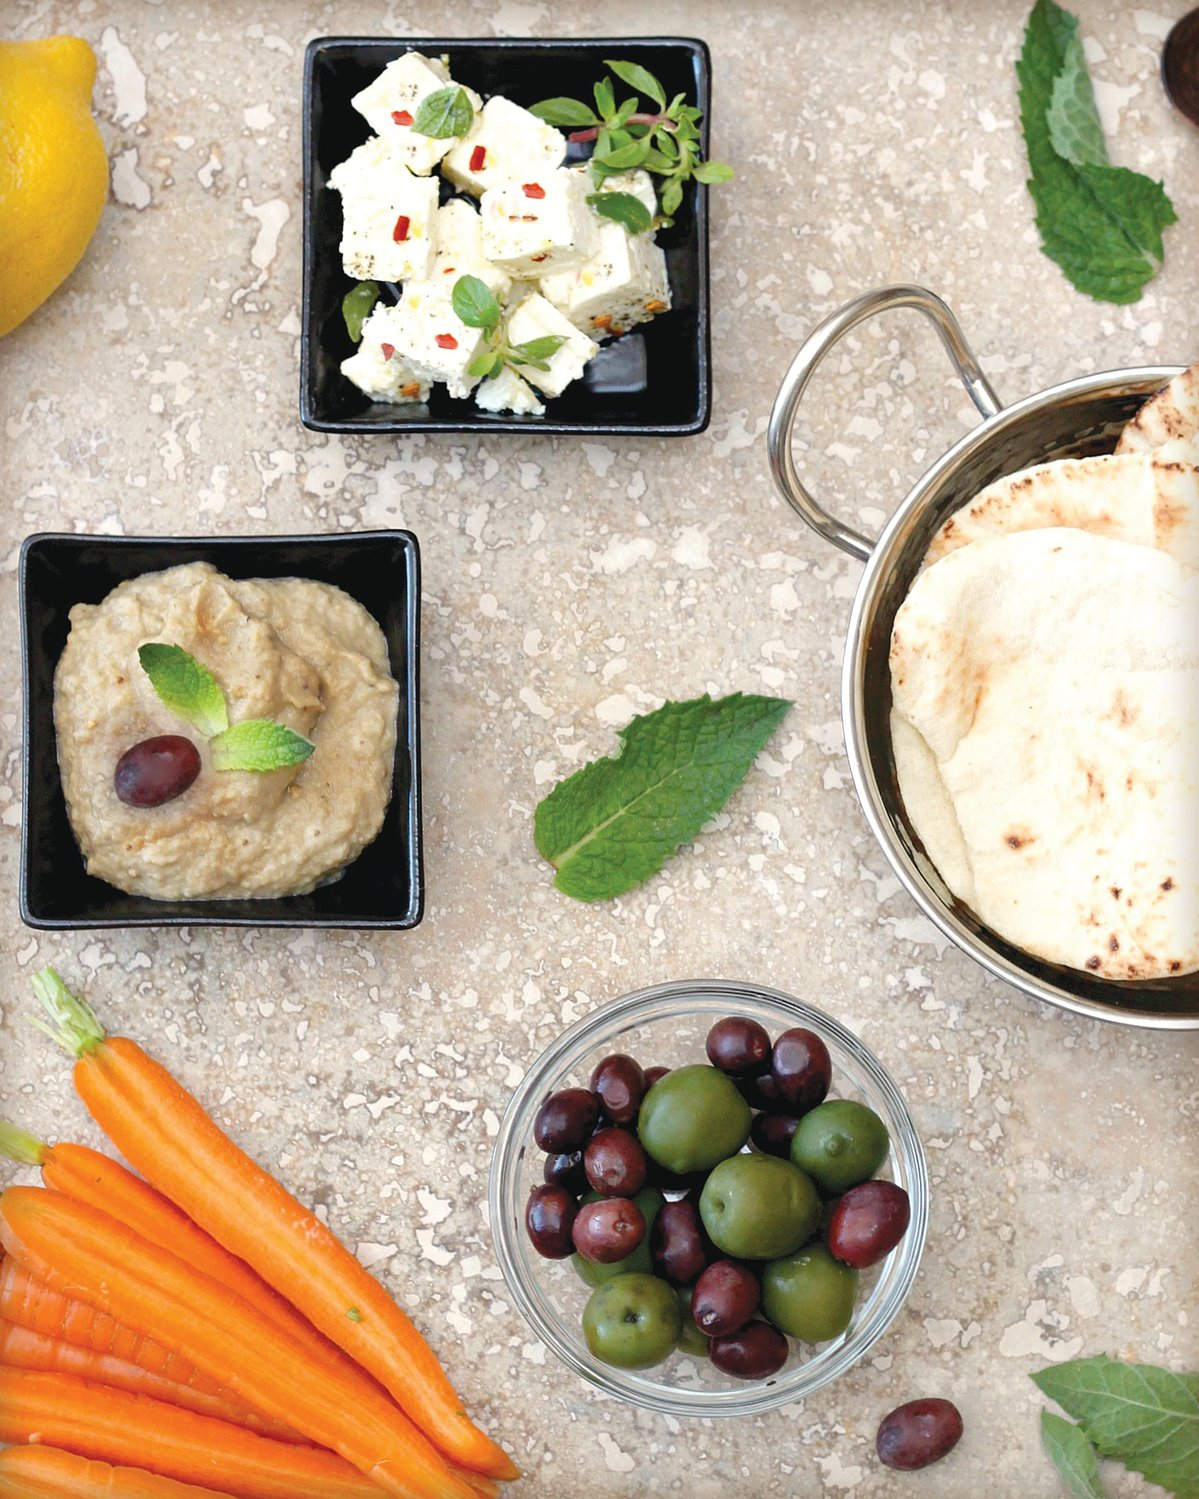 This recipe is inspired by baba ghanoush, which is a traditional Middle Eastern dip made with roasted eggplant, tahini and lemon.